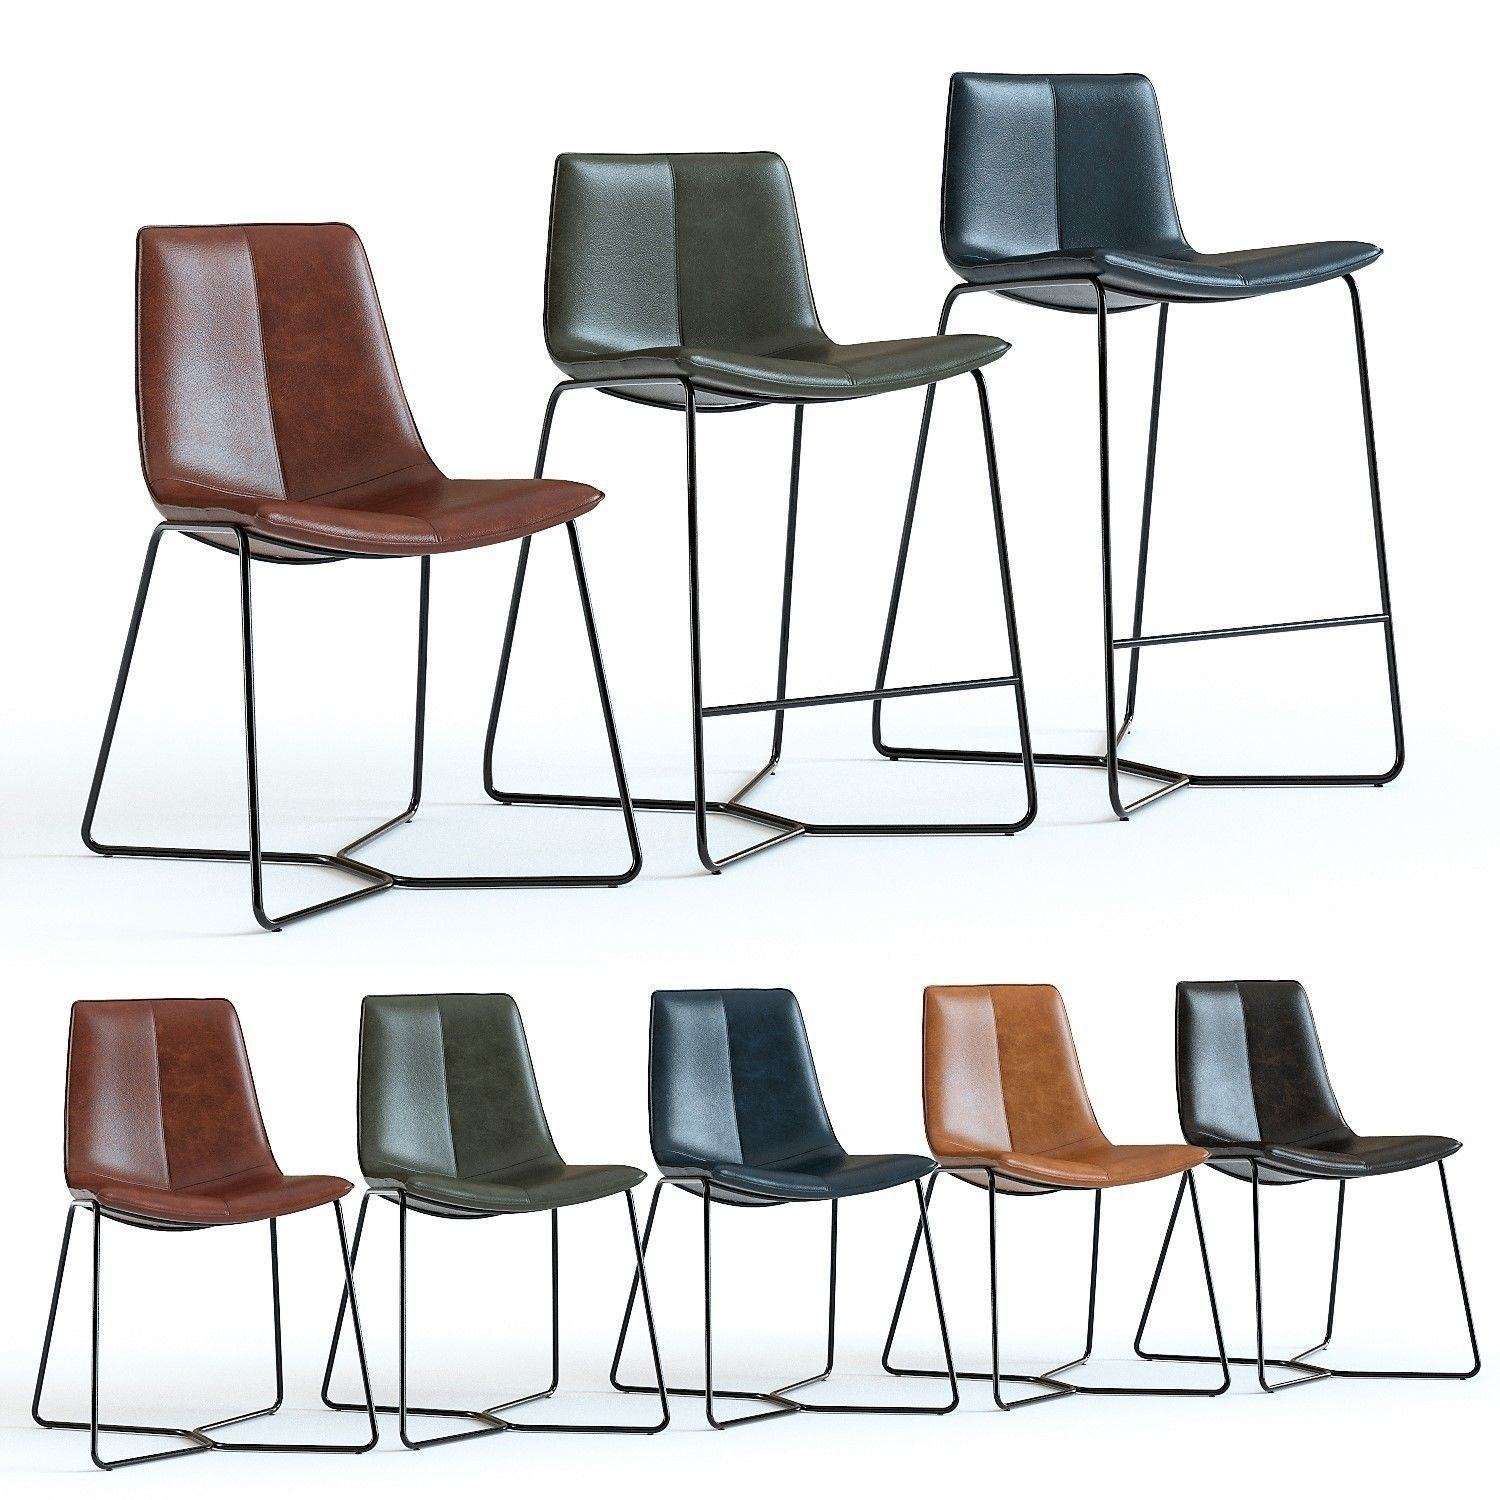 Remarkable West Elm Slope Leather Chairs 3D Model Gmtry Best Dining Table And Chair Ideas Images Gmtryco